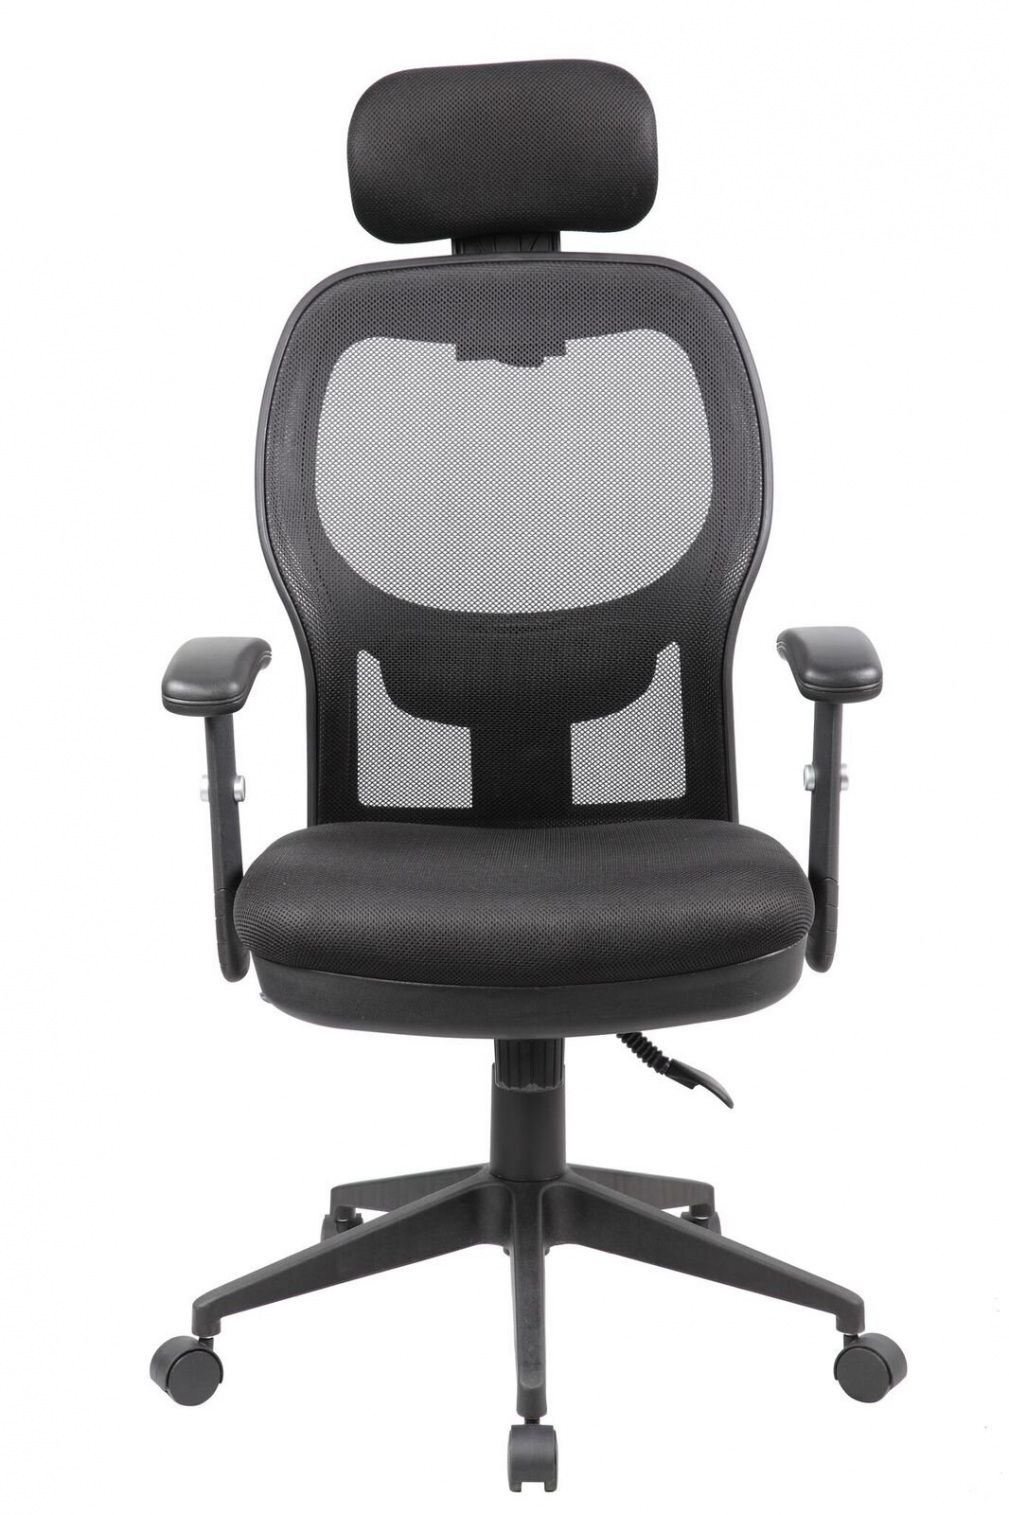 fully adjustable office chair. Fully Adjustable Office Chair - Best Home Furniture Check More At Http:// U